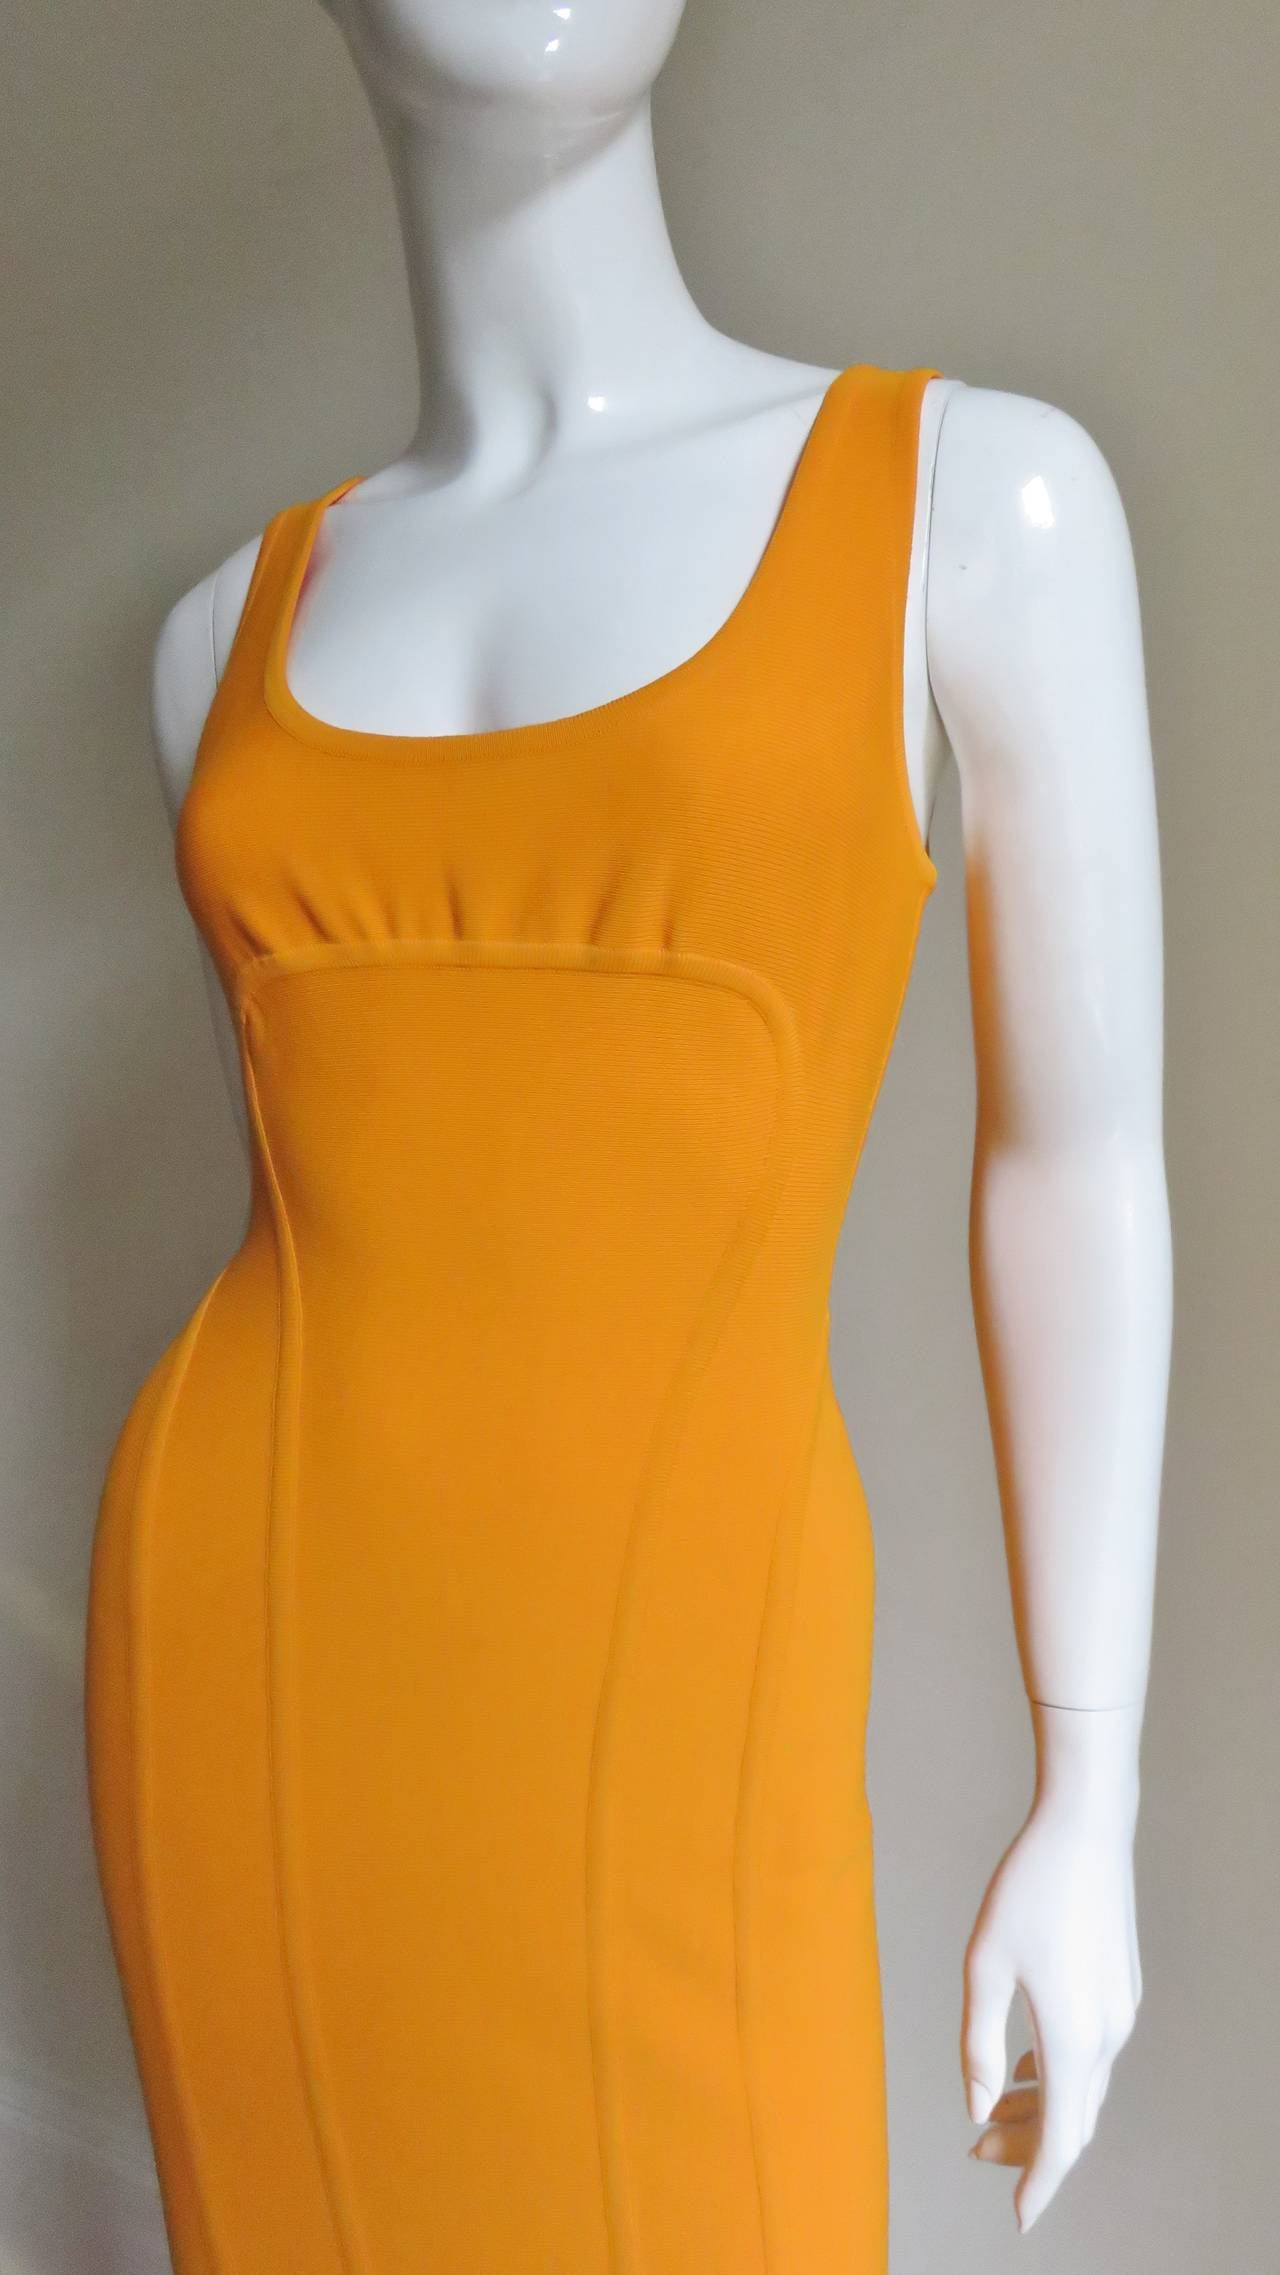 A great dress from the master Herve Leger in a fabulous marigold color stretch bandage fabric.  Typical form and fit he is known for including multiple seaming which enhance shape.  It is sleeveless with a scoop neckline and curved seaming under the